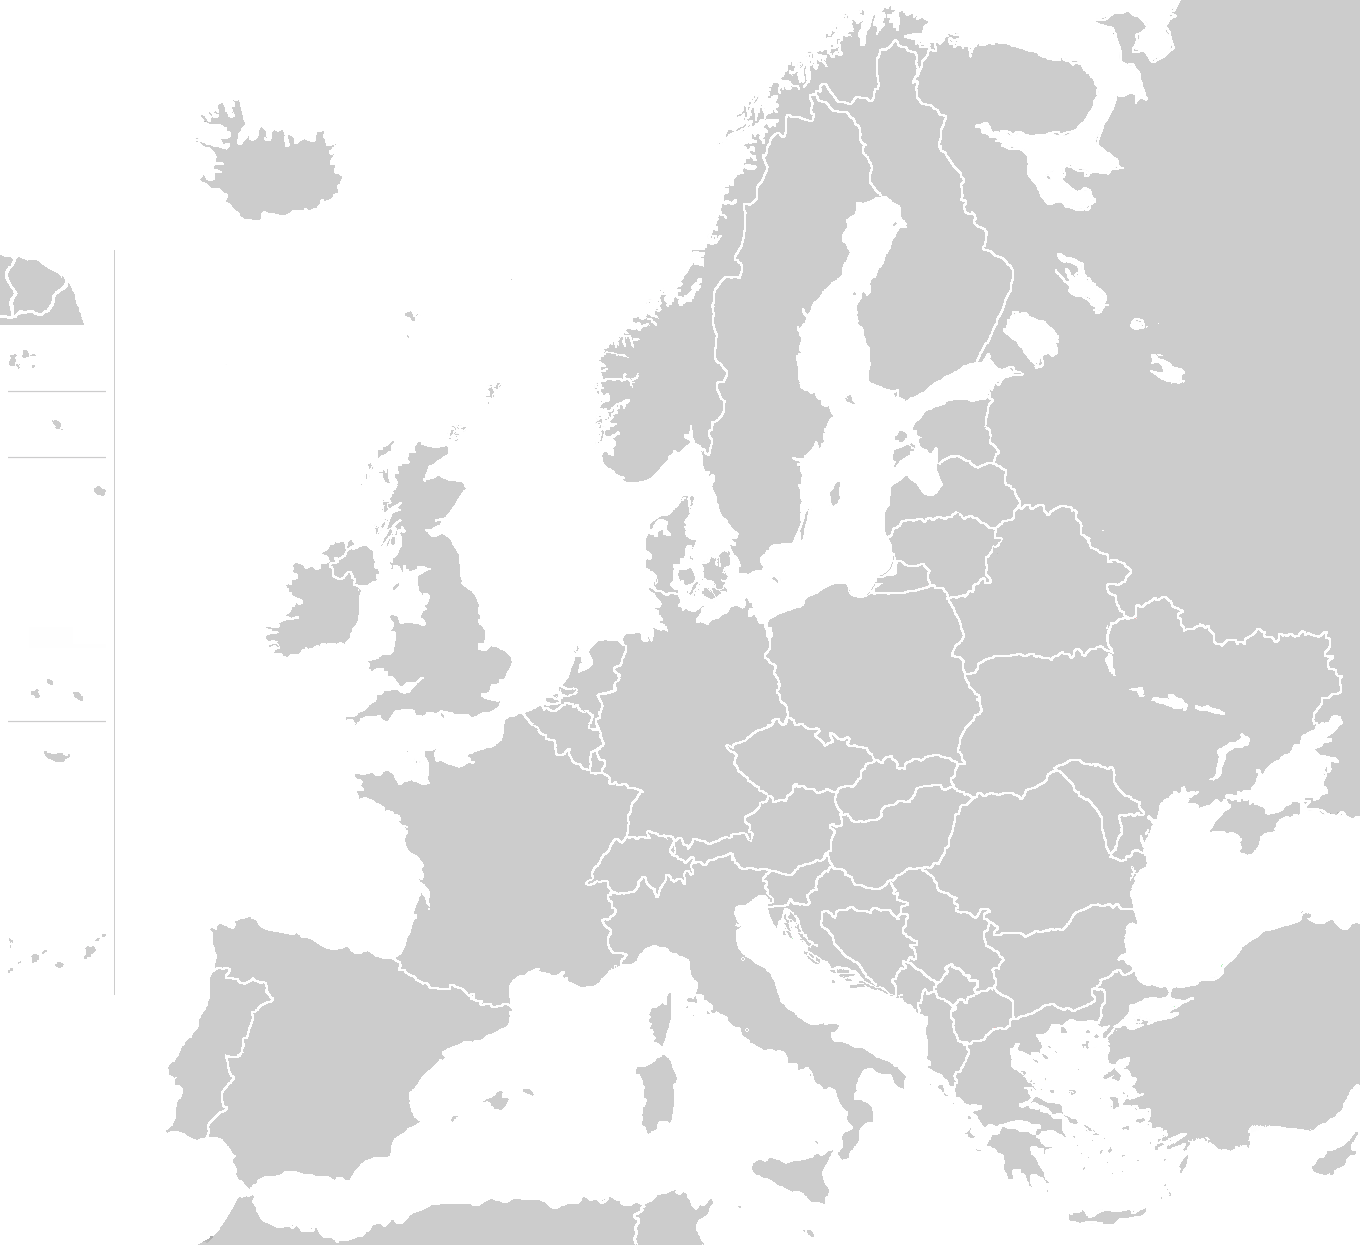 File:Europe map bulgaria.png